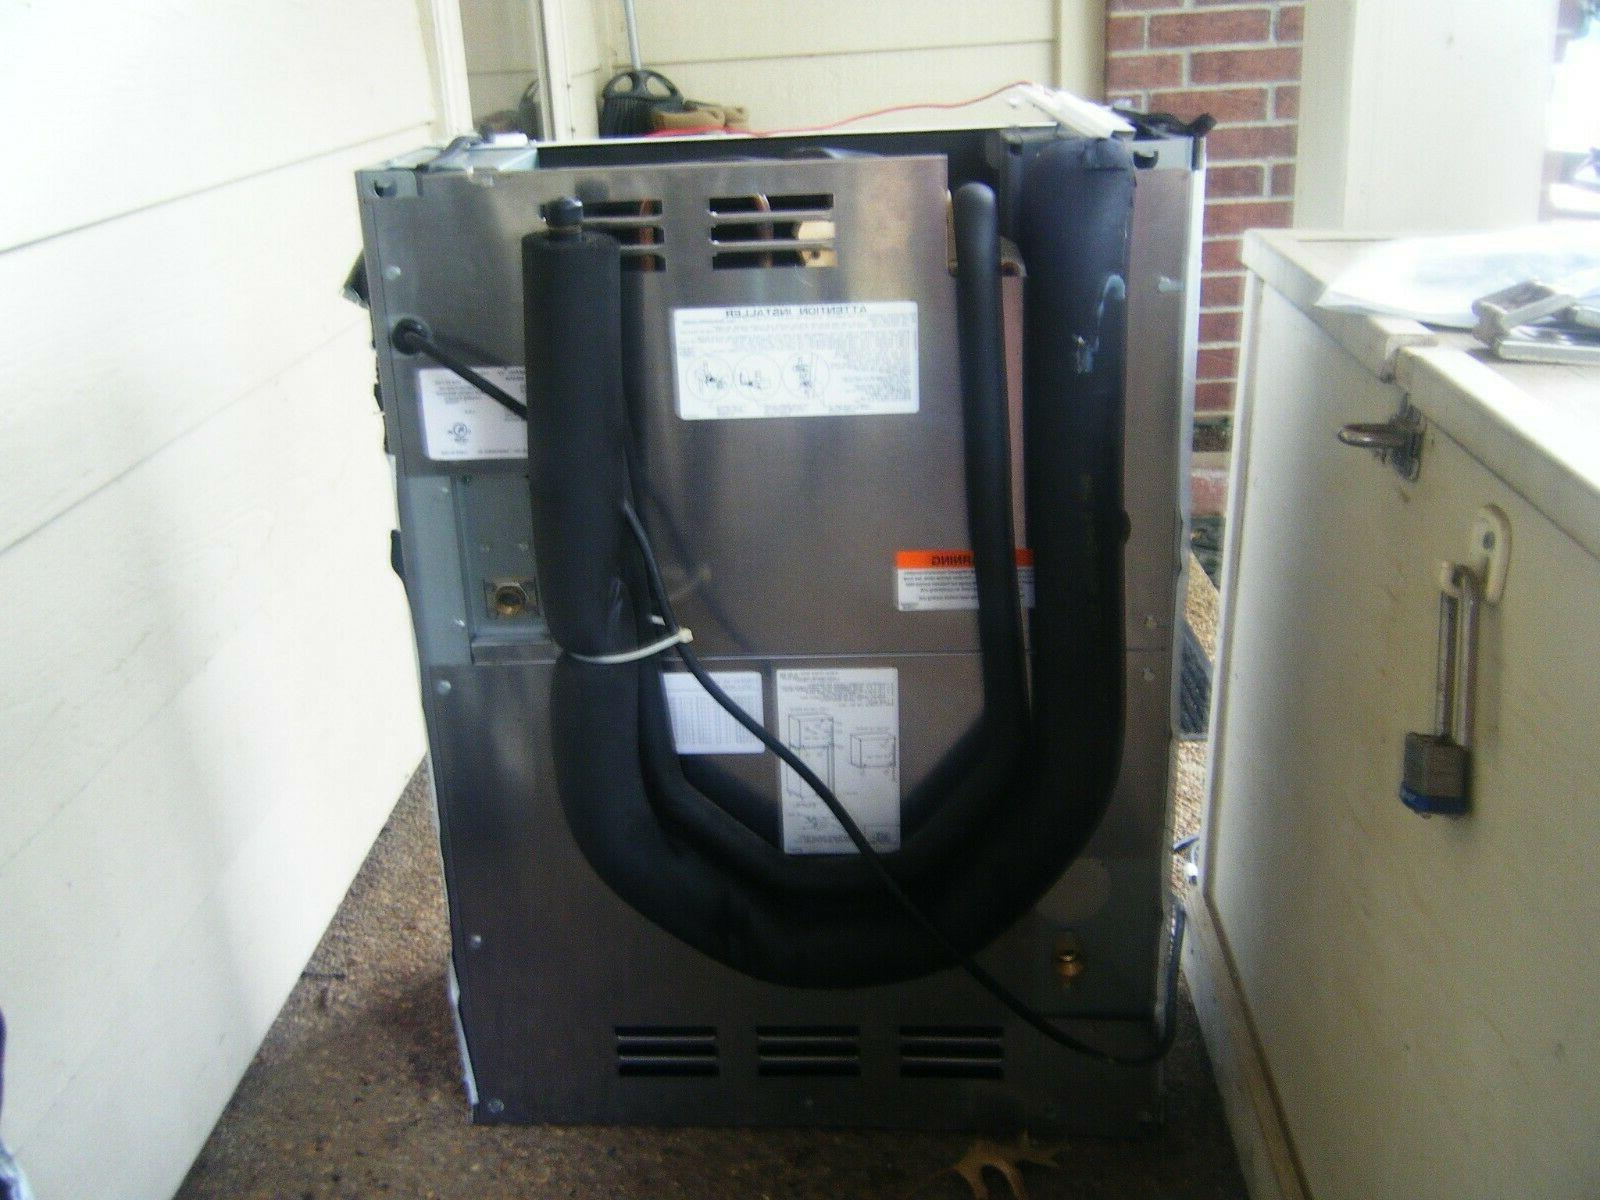 Manitowoc IB1024YC- Without installed or